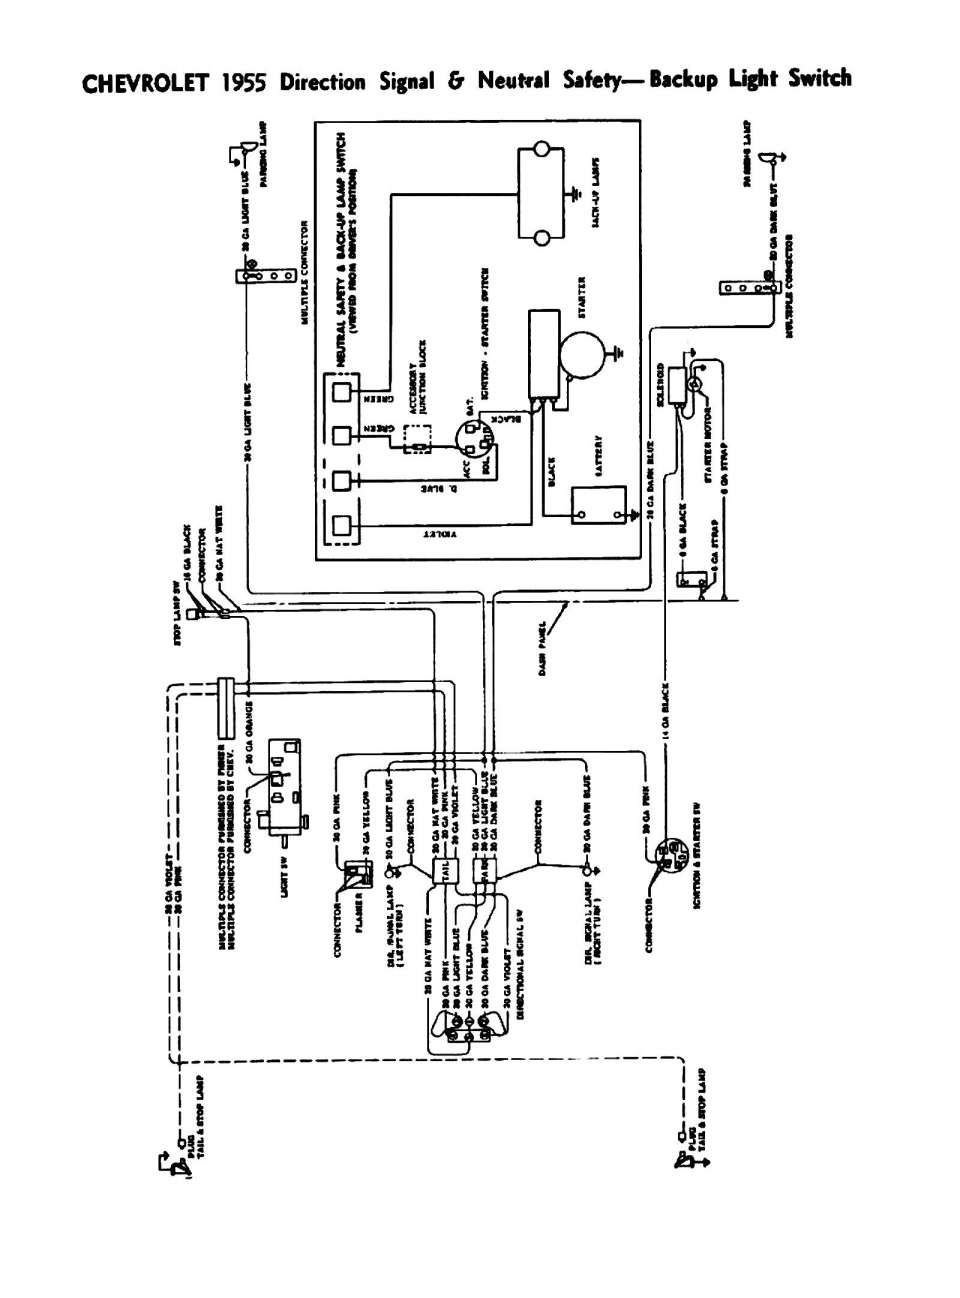 Dome Light Wiring Diagram 40 Chevy Bel Air   Fusebox and Wiring ...